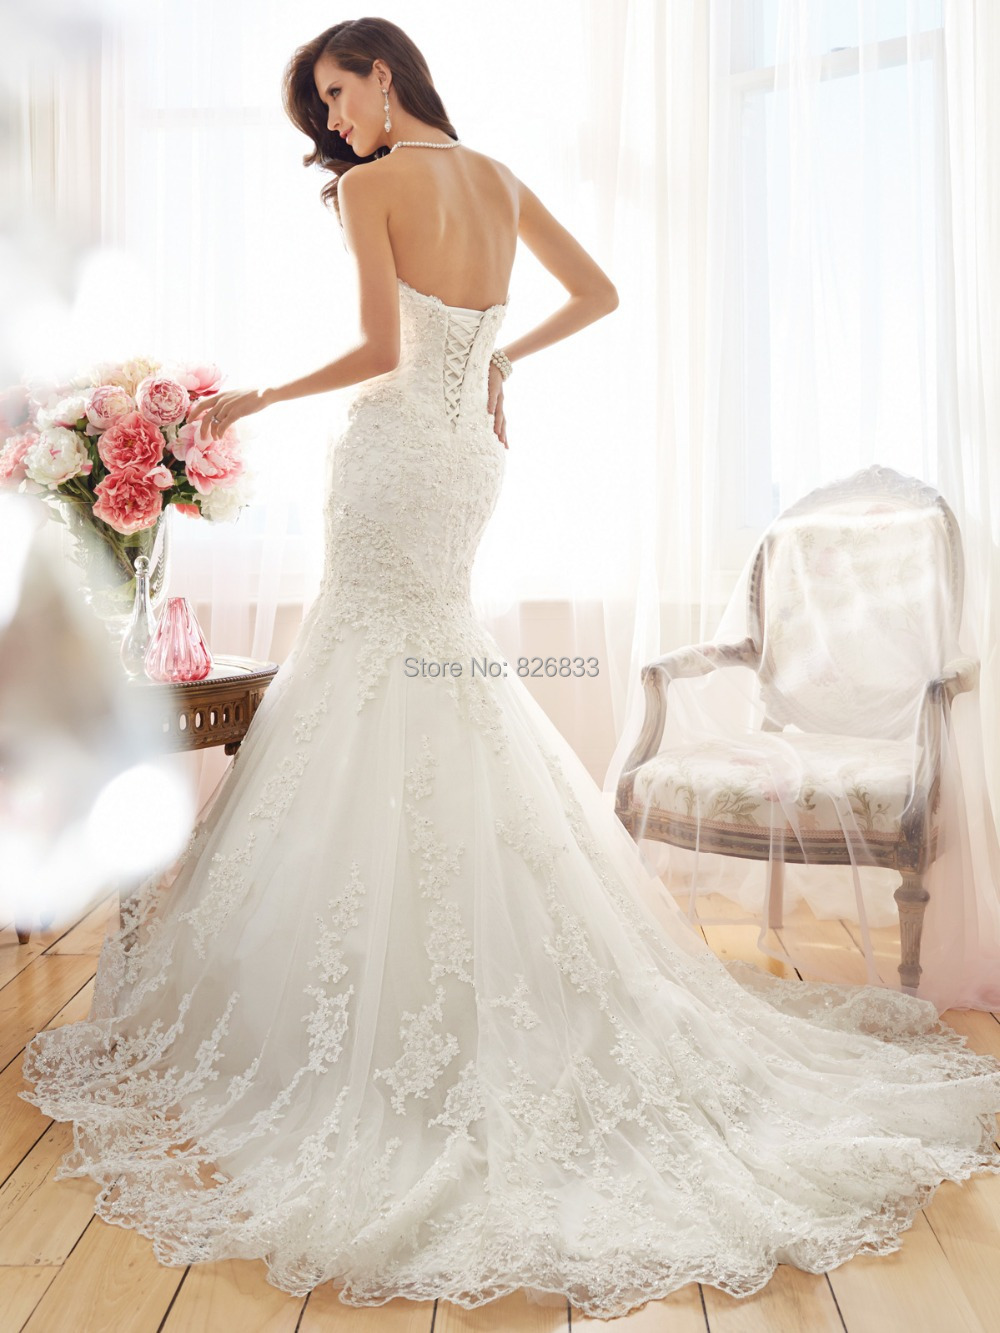 7ef214129f Romantic Style Appliques Sweetheart Ivory Lace Mermaid Wedding Dresses  Corset Bridal Gowns 2015 Hot Sale-in Wedding Dresses from Weddings   Events  on ...